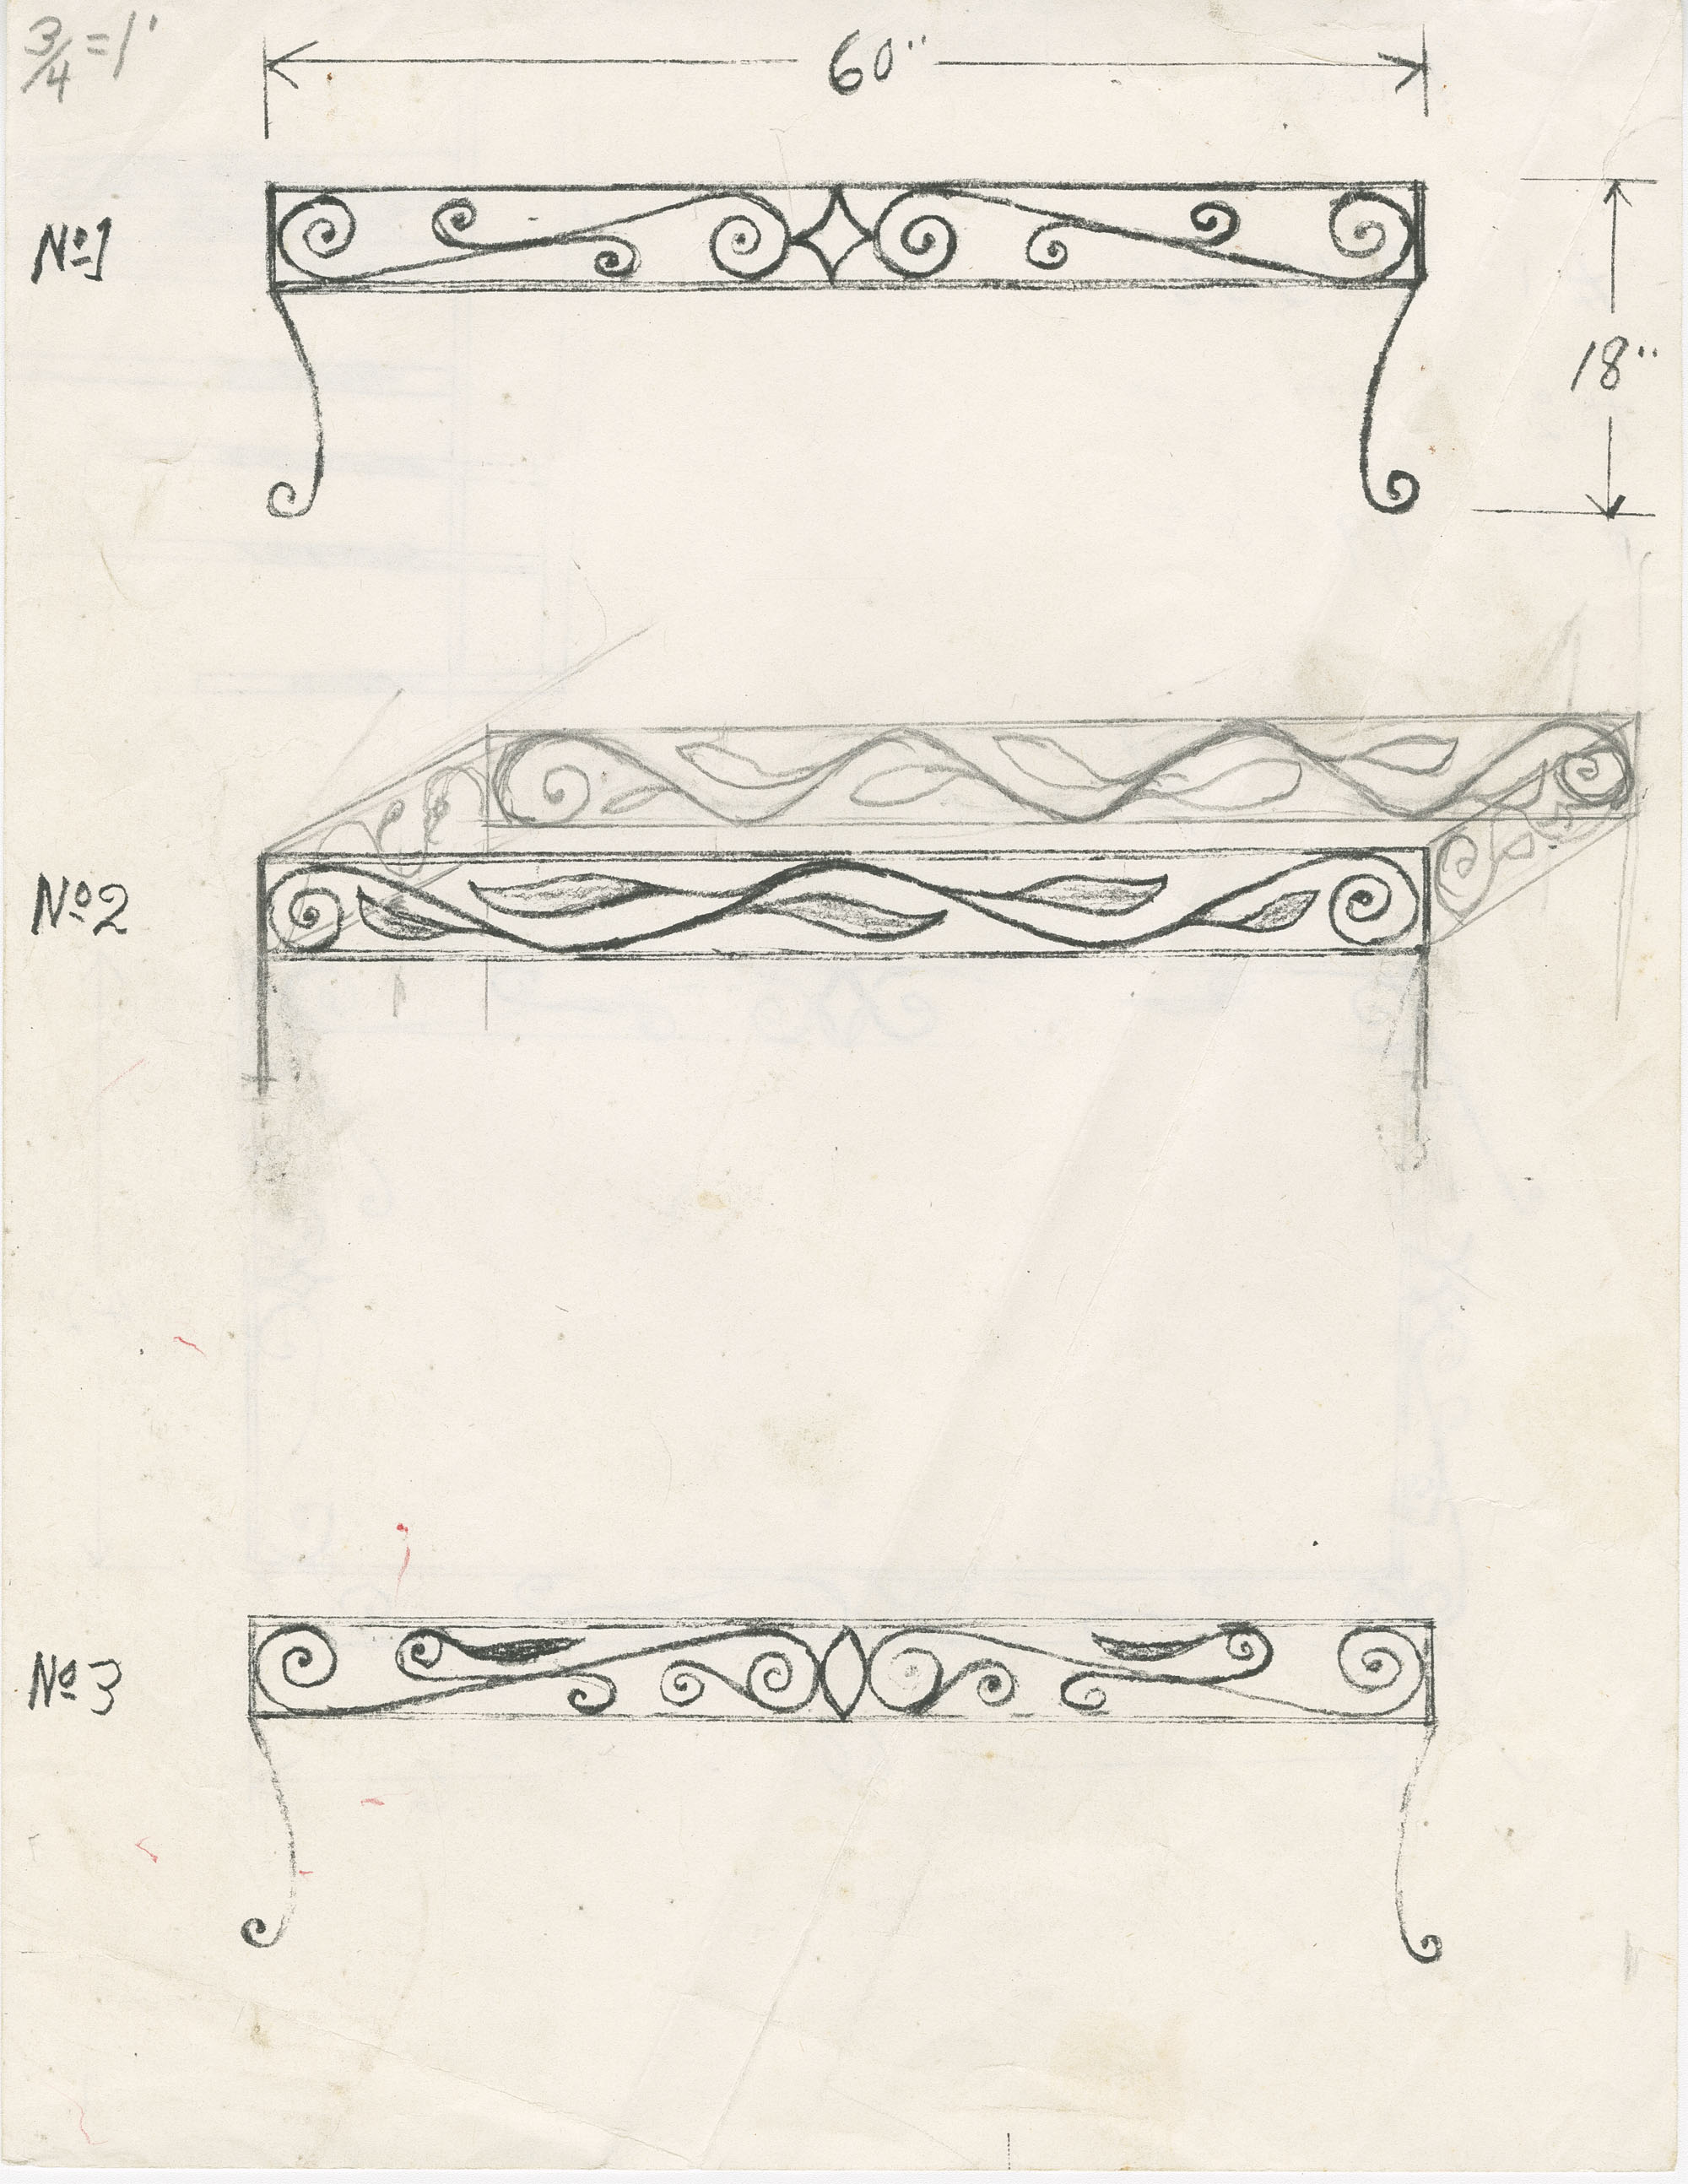 Unidentified coffee table frame designs in graphite and photocopied (8 1/2